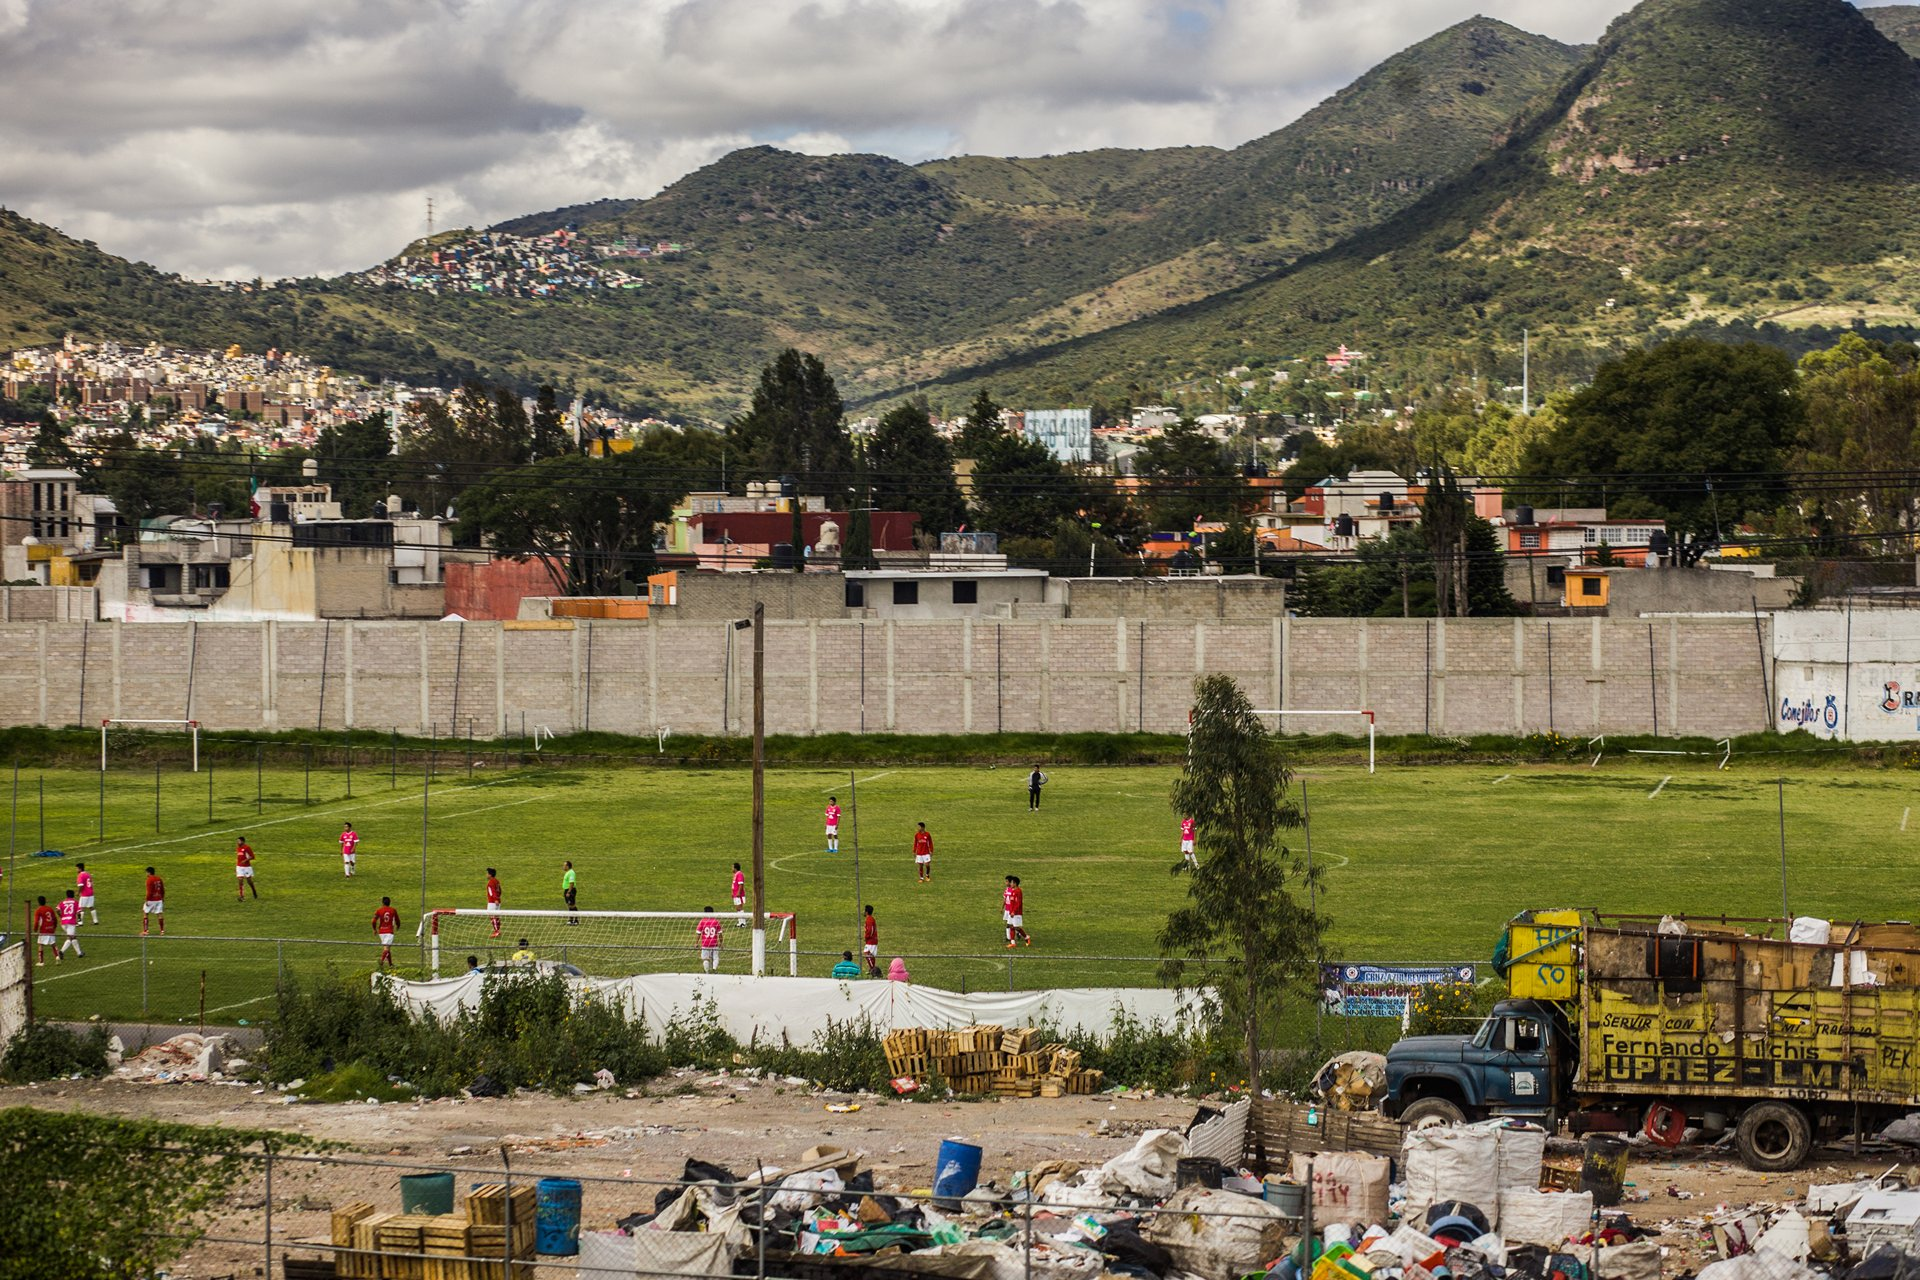 Photographer Paris - Travel Mexico - Soccer field and garbage dump